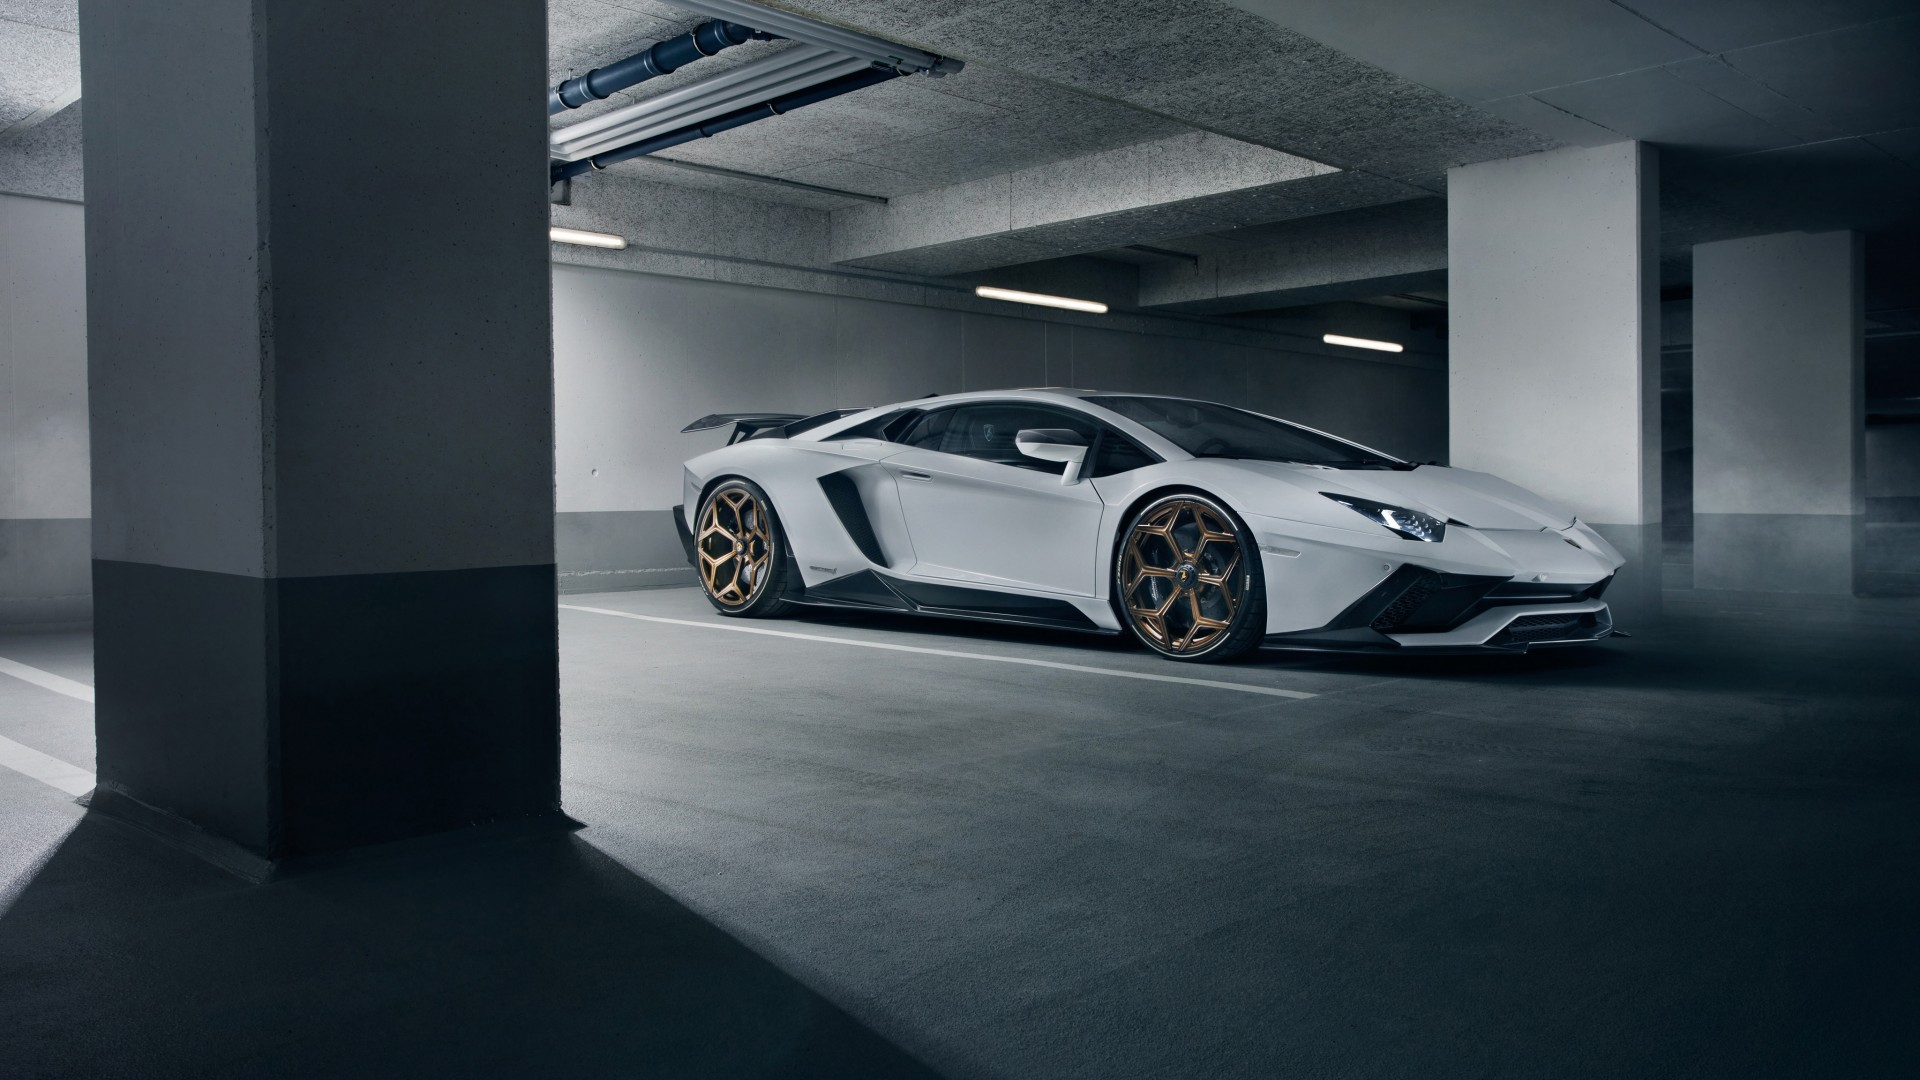 2018 Novitec Torado Lamborghini Aventador S 4k 7 Wallpaper Hd Car Wallpapers Id 10020